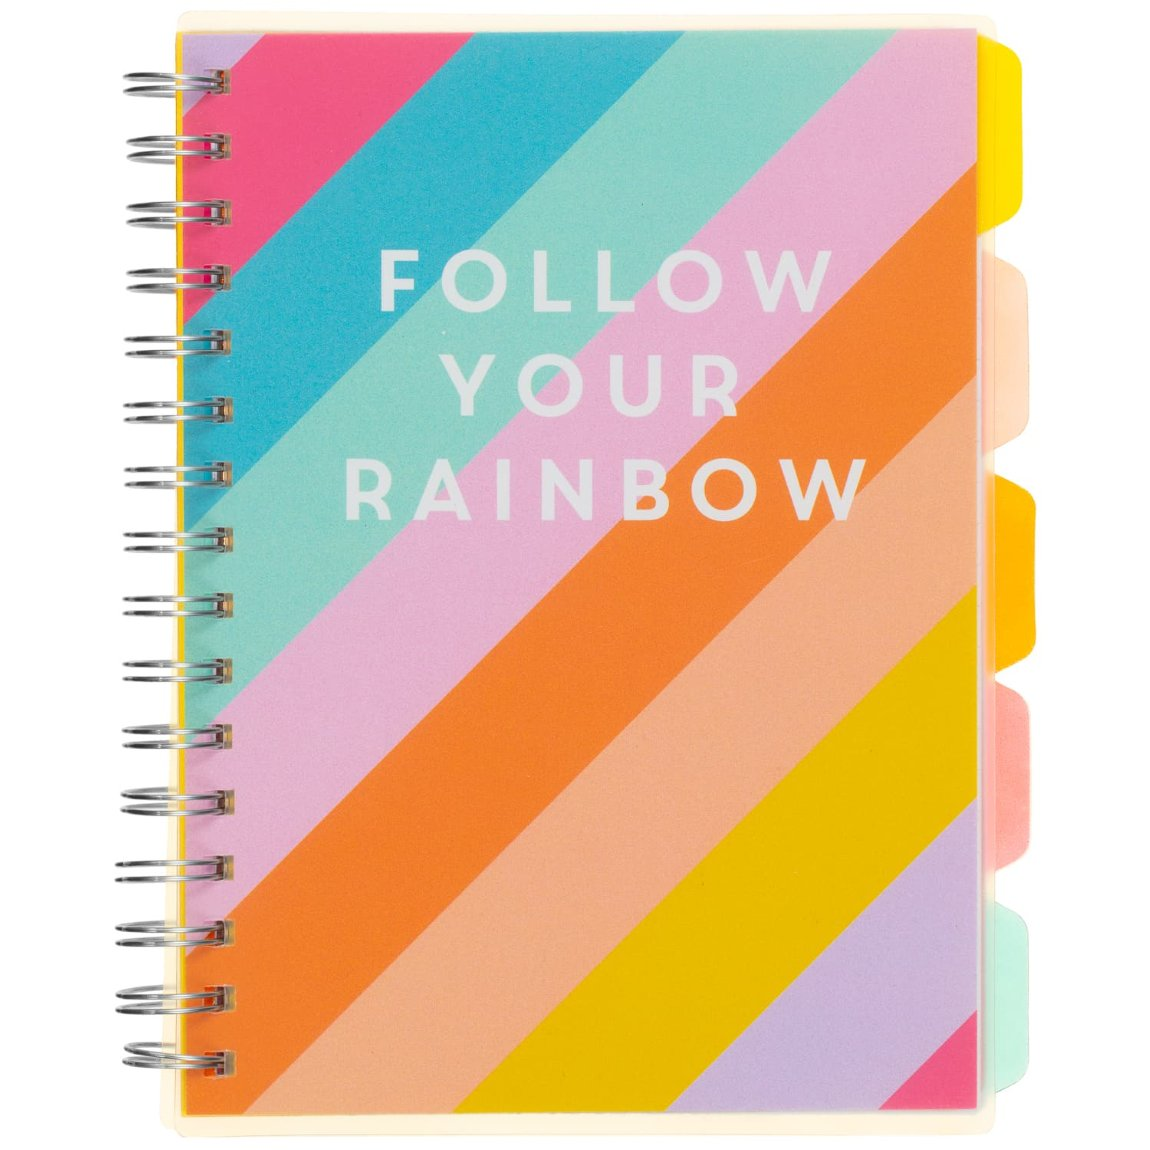 A5 Project Notebook - Follow Your Rainbow